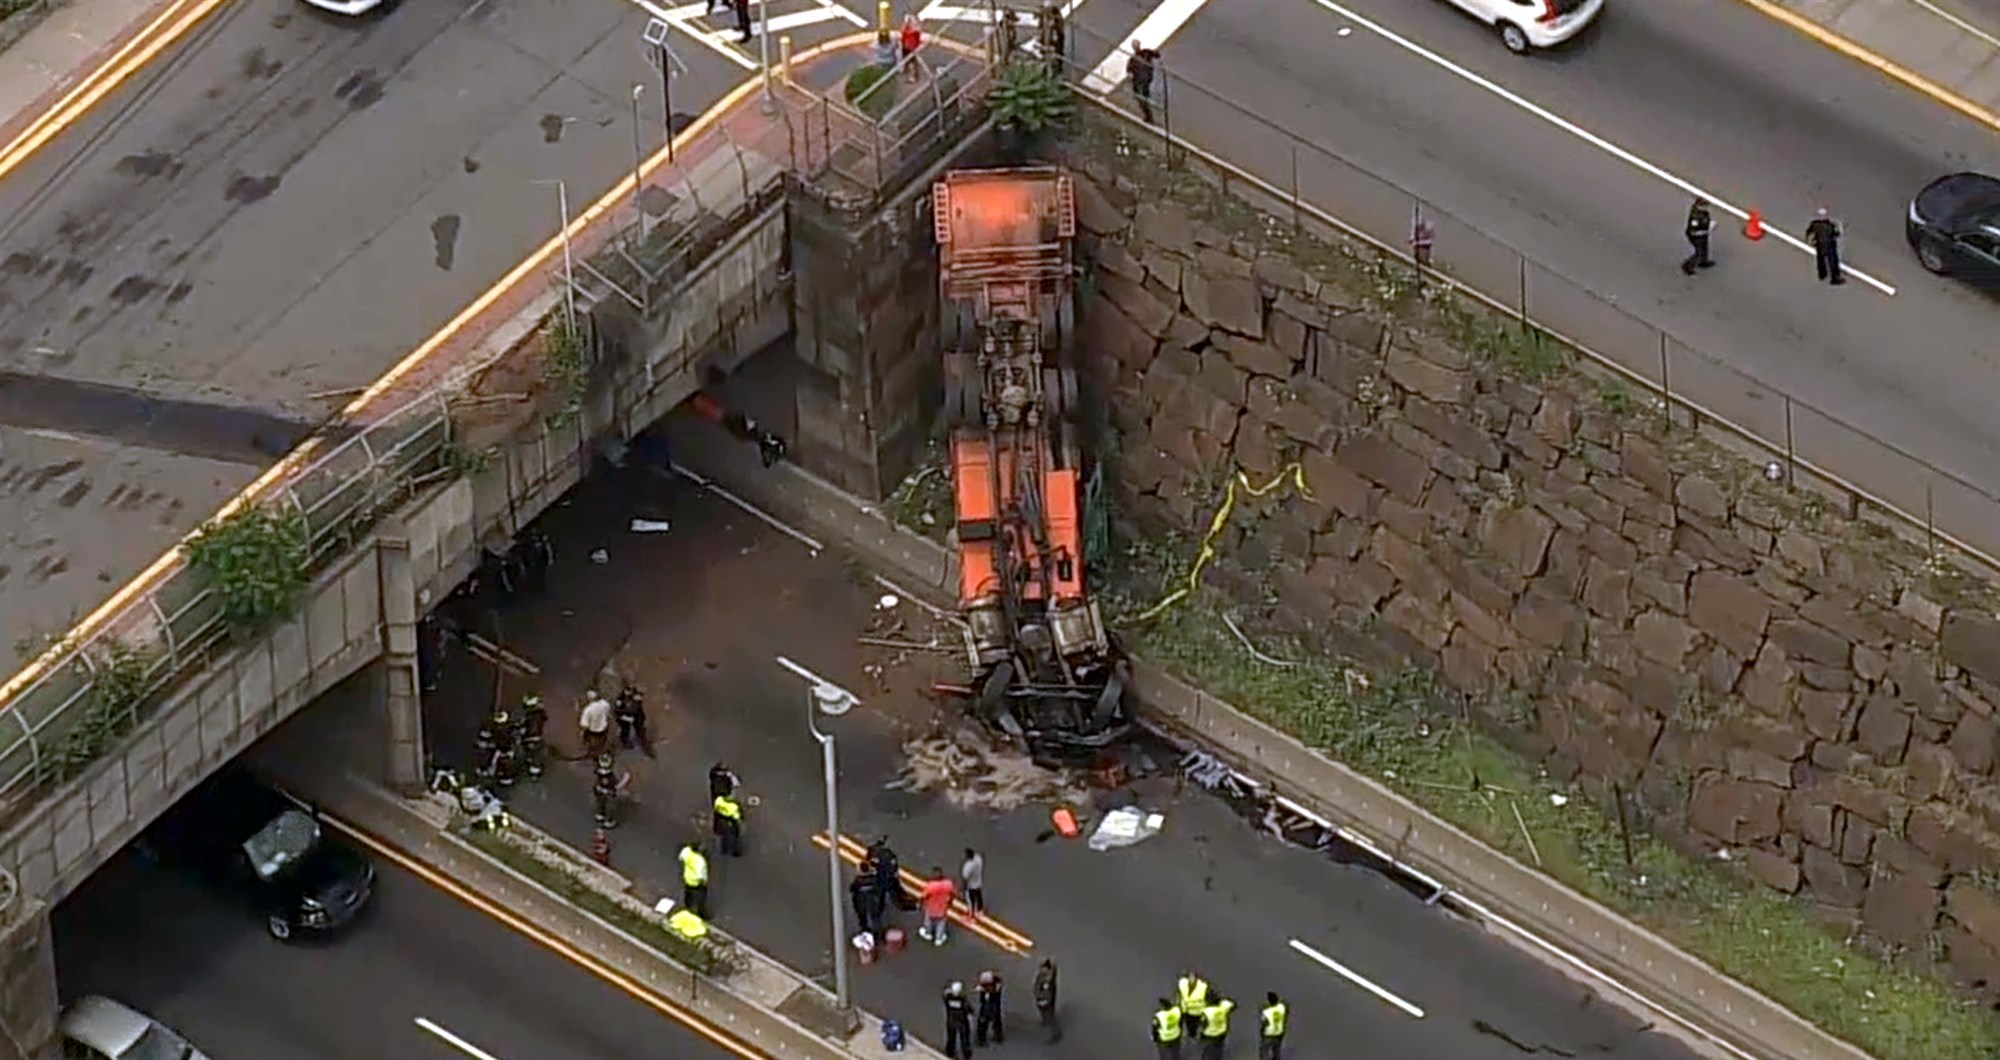 Overturned Truck Lincoln Tunnel New Jersey – Garbage Truck Accident